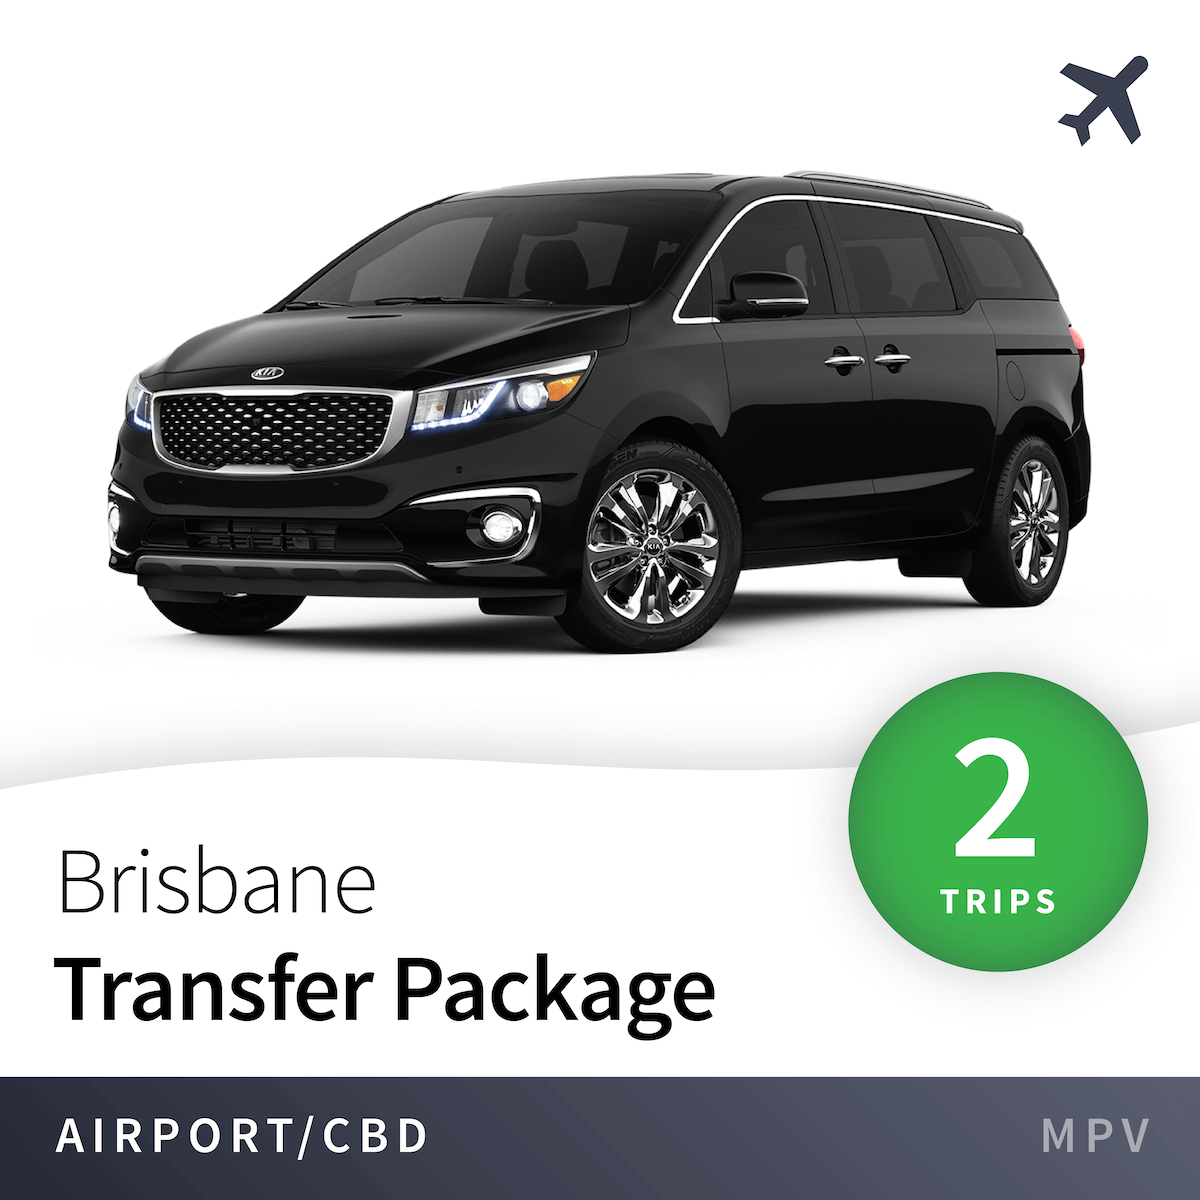 Brisbane Airport Transfer Package - MPV (2 Trips) 4